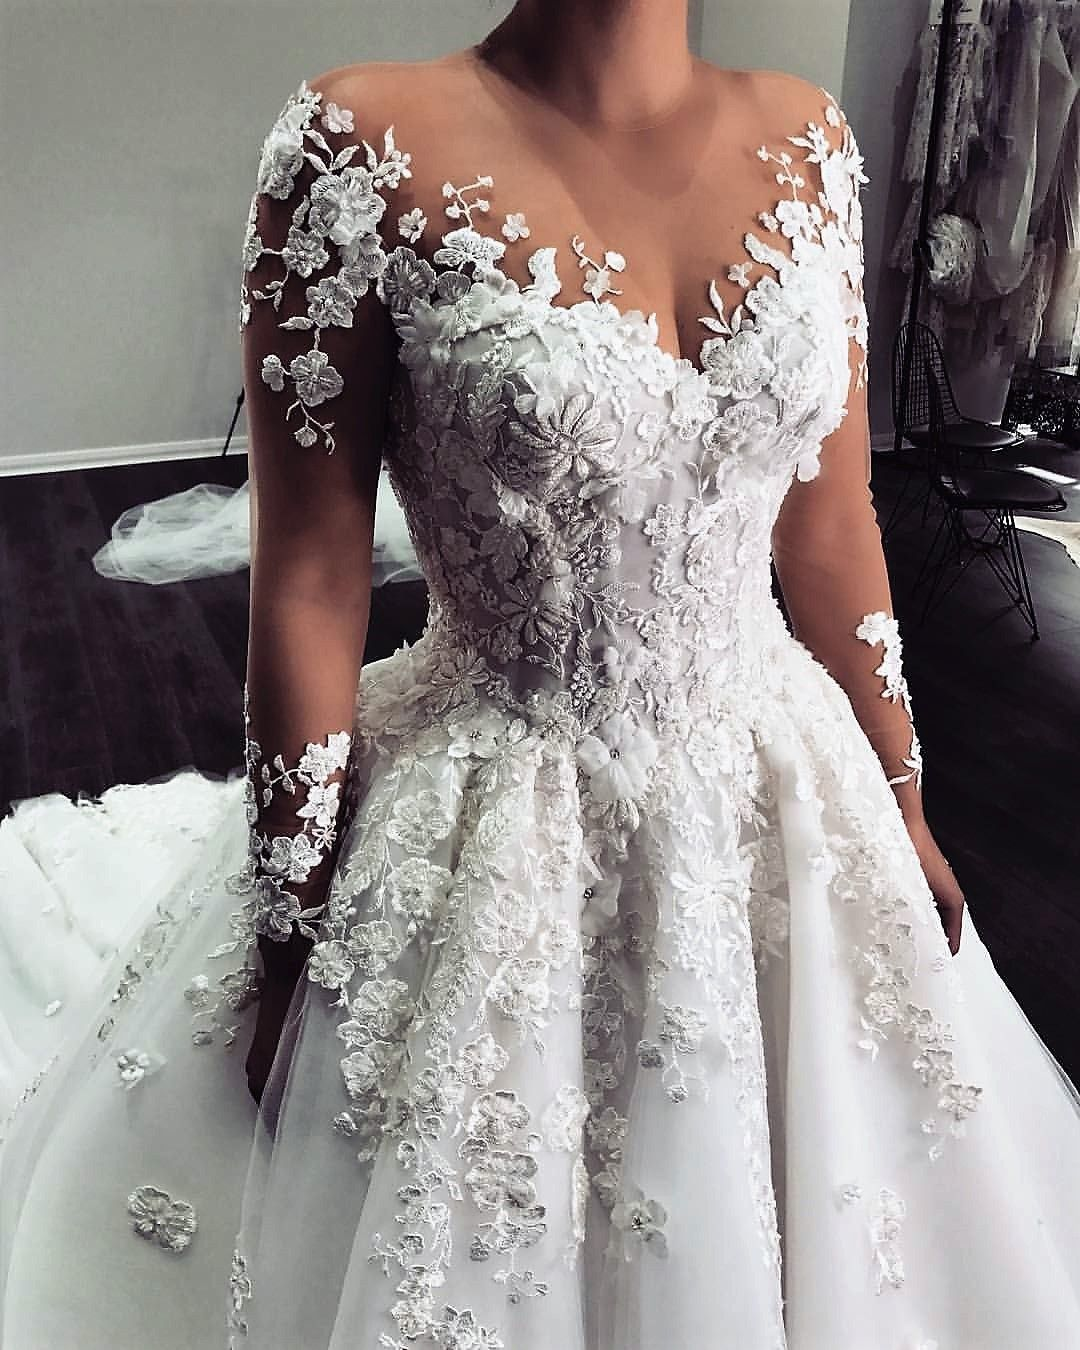 Pin By Micaiah B On Fashion In 2020 Long Sleeve Wedding Gowns Wedding Dresses Lace Wedding Gowns With Sleeves